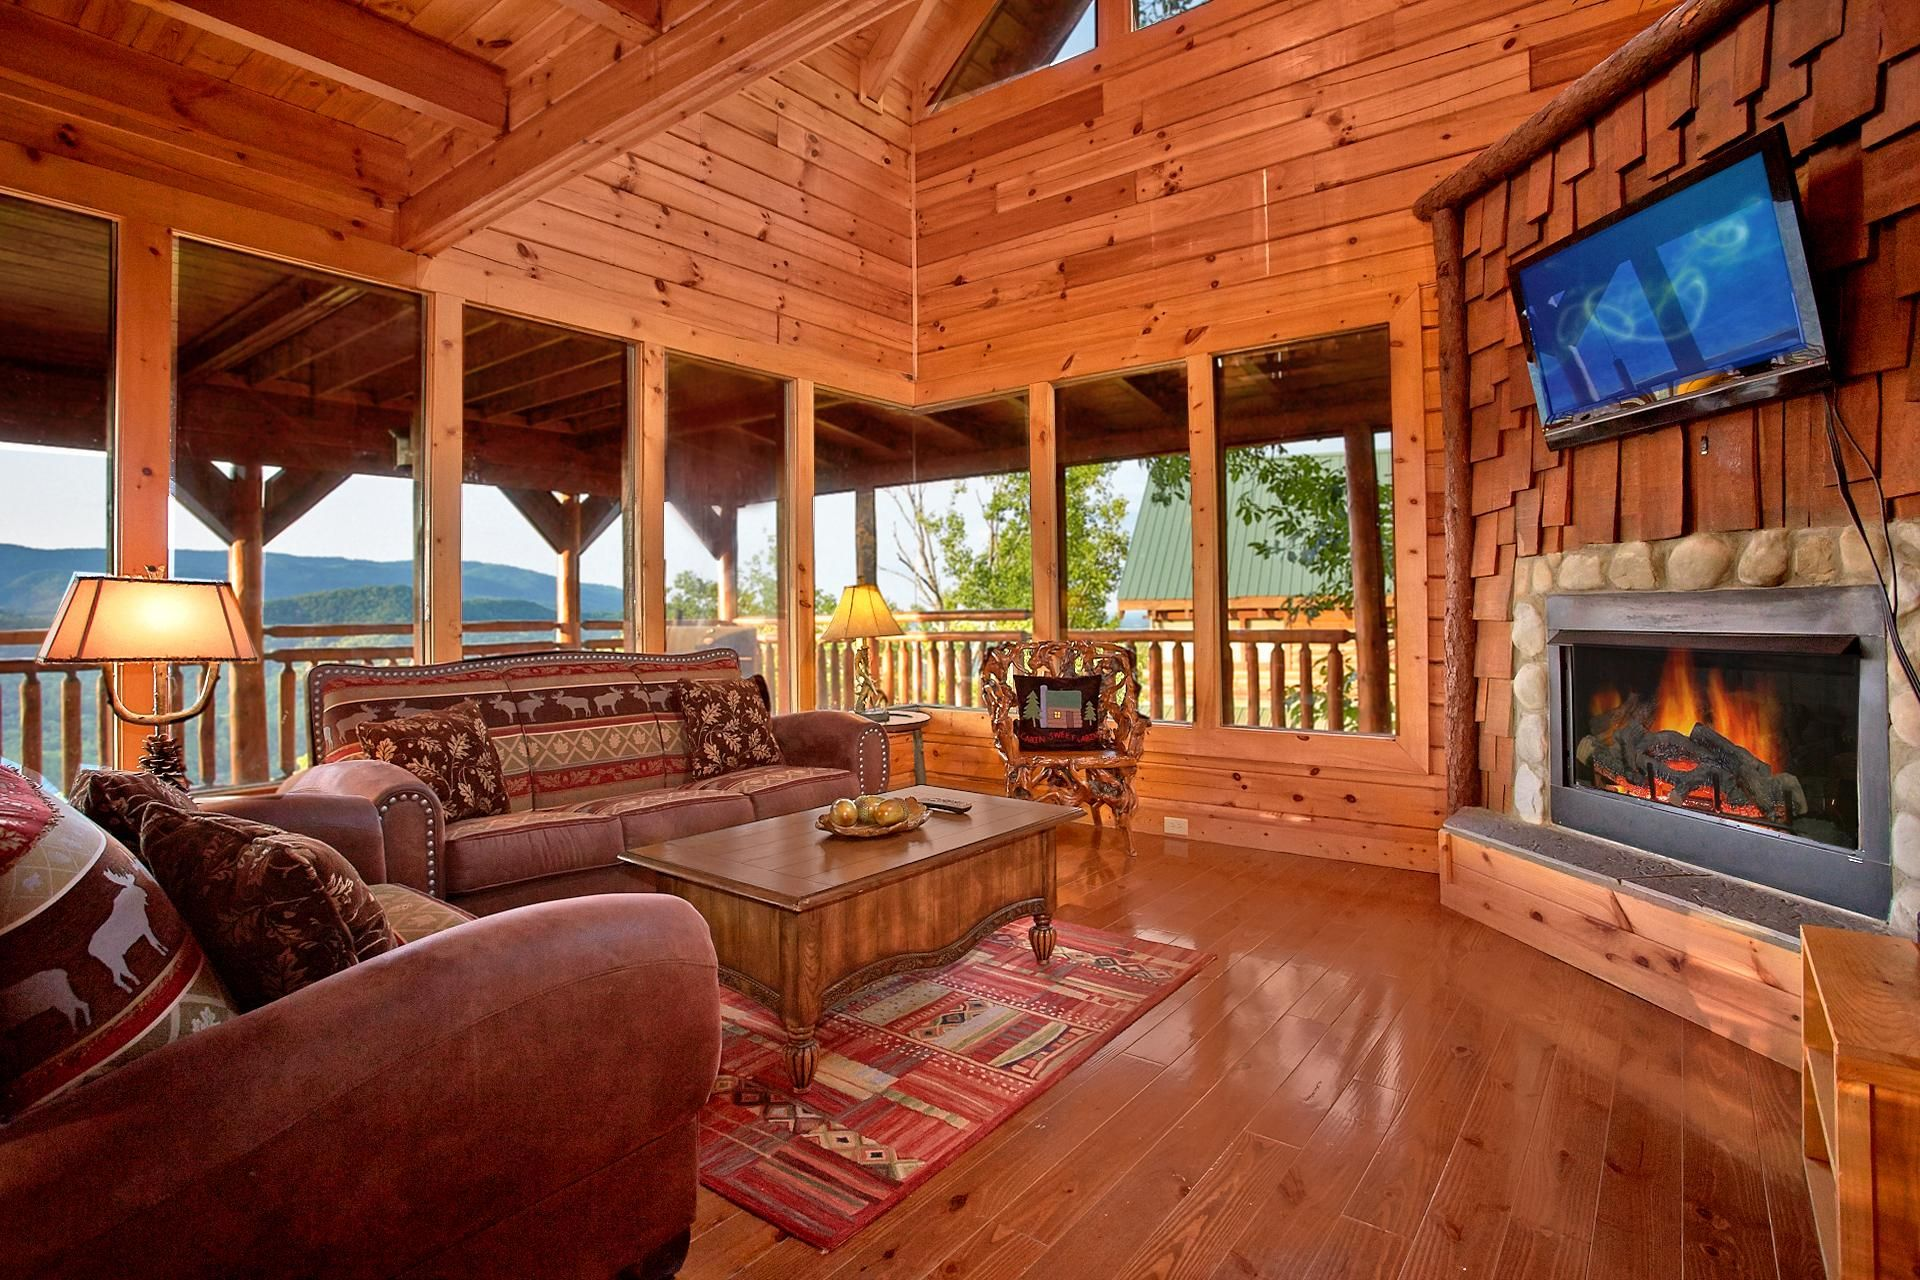 forge cheap pigeon rentals cabins vacation ii romantic honeymoon tn tennessee one home in bedroom magic gatlinburg cabin moments cheapn